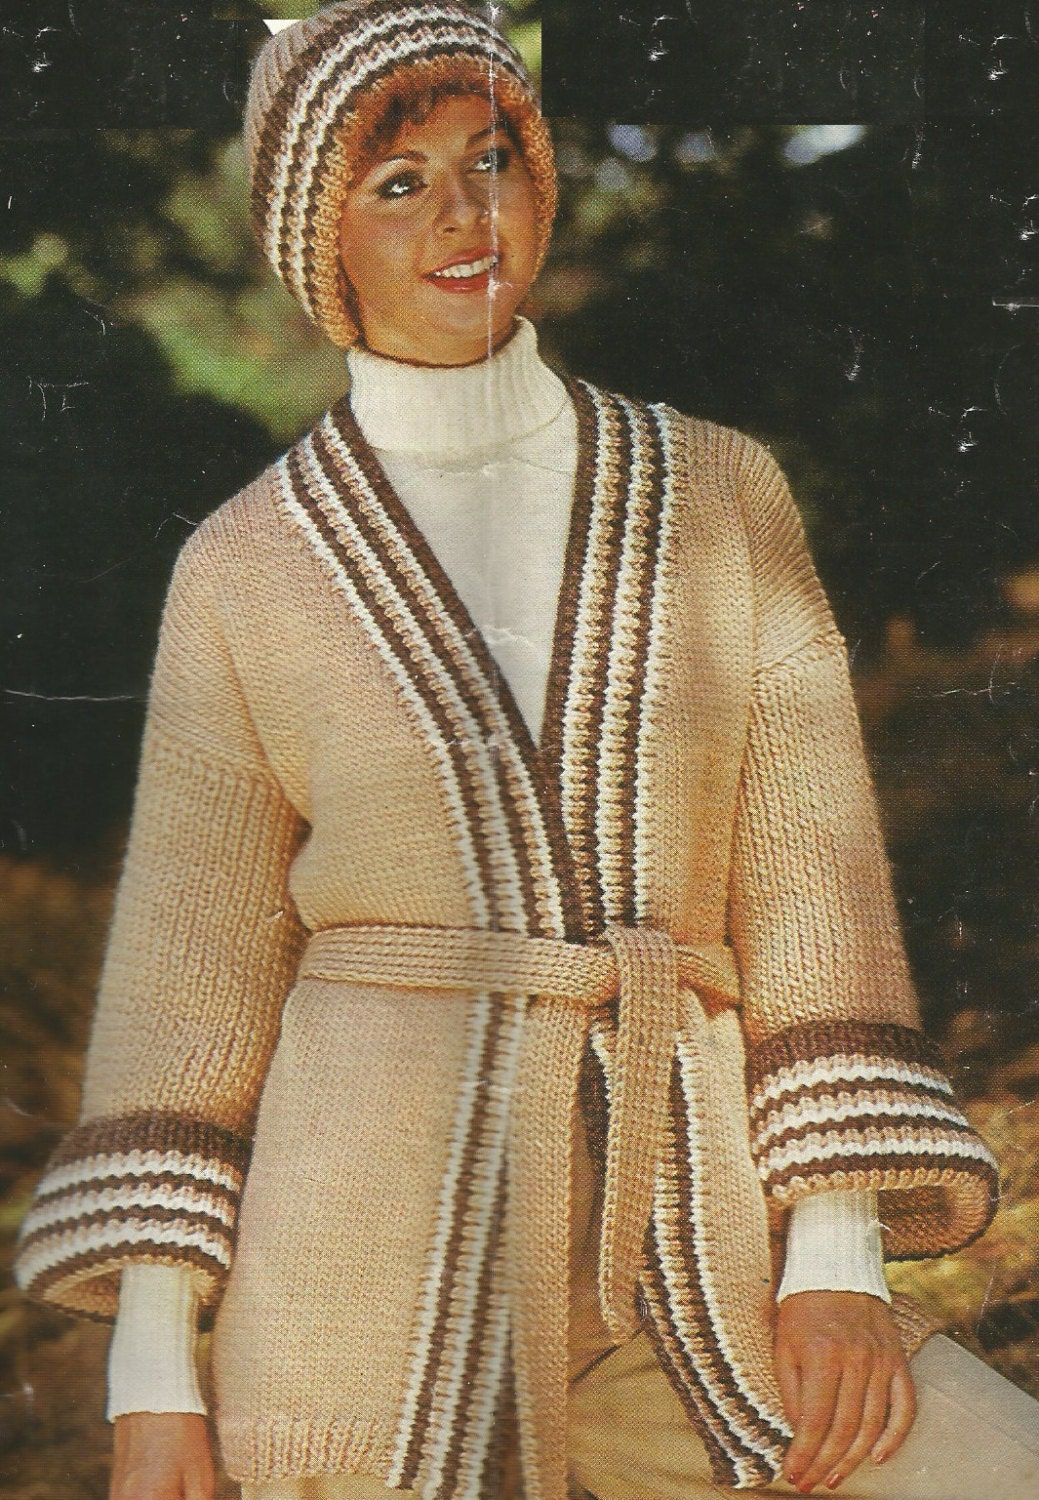 dac88199a Vintage Ladies Long Chunky Jacket And Hat Knitting PDF Pattern from  CraftyKittenCorner on Etsy Studio